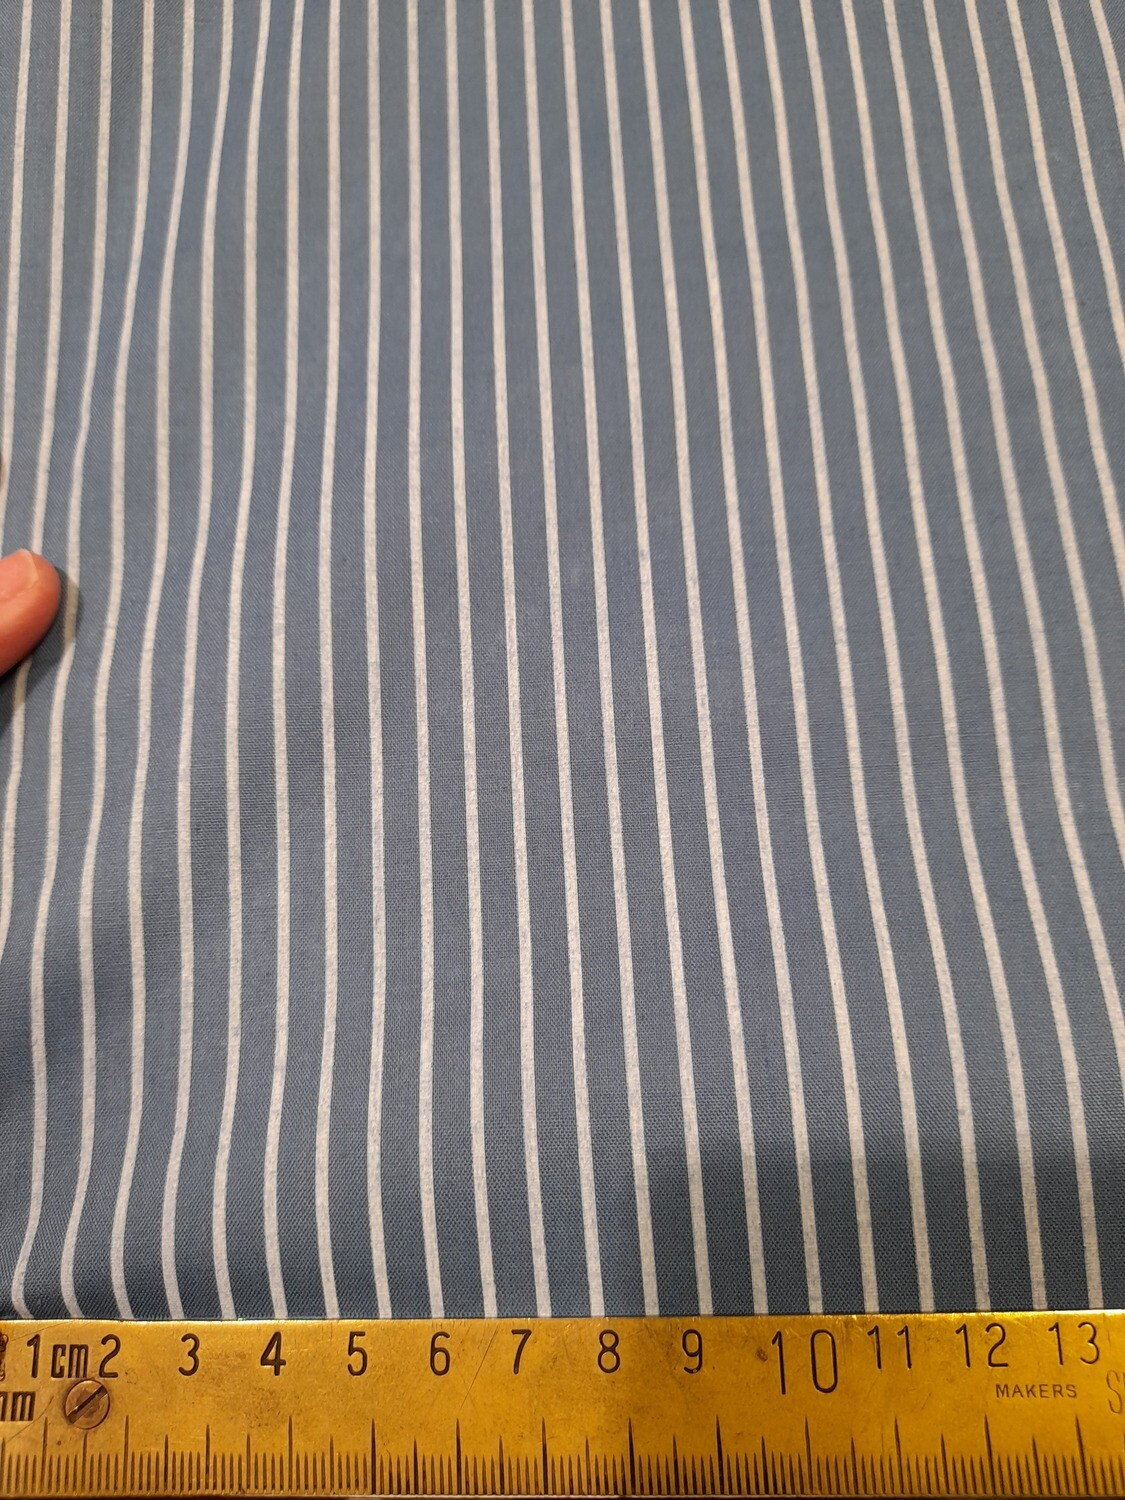 Blue with white stripes